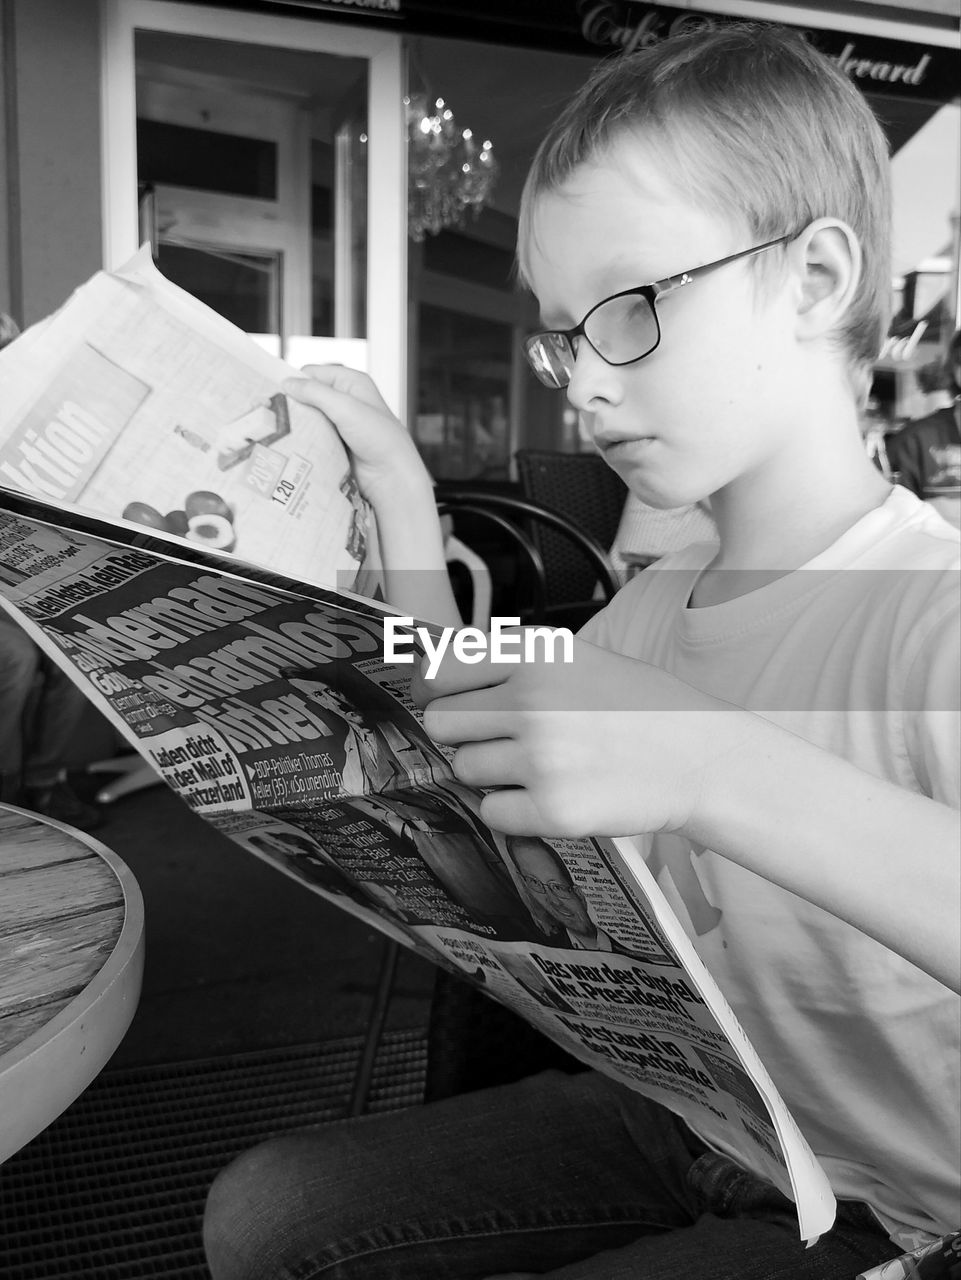 child, childhood, one person, real people, lifestyles, boys, leisure activity, glasses, males, men, holding, indoors, looking, casual clothing, eyeglasses, concentration, home interior, innocence